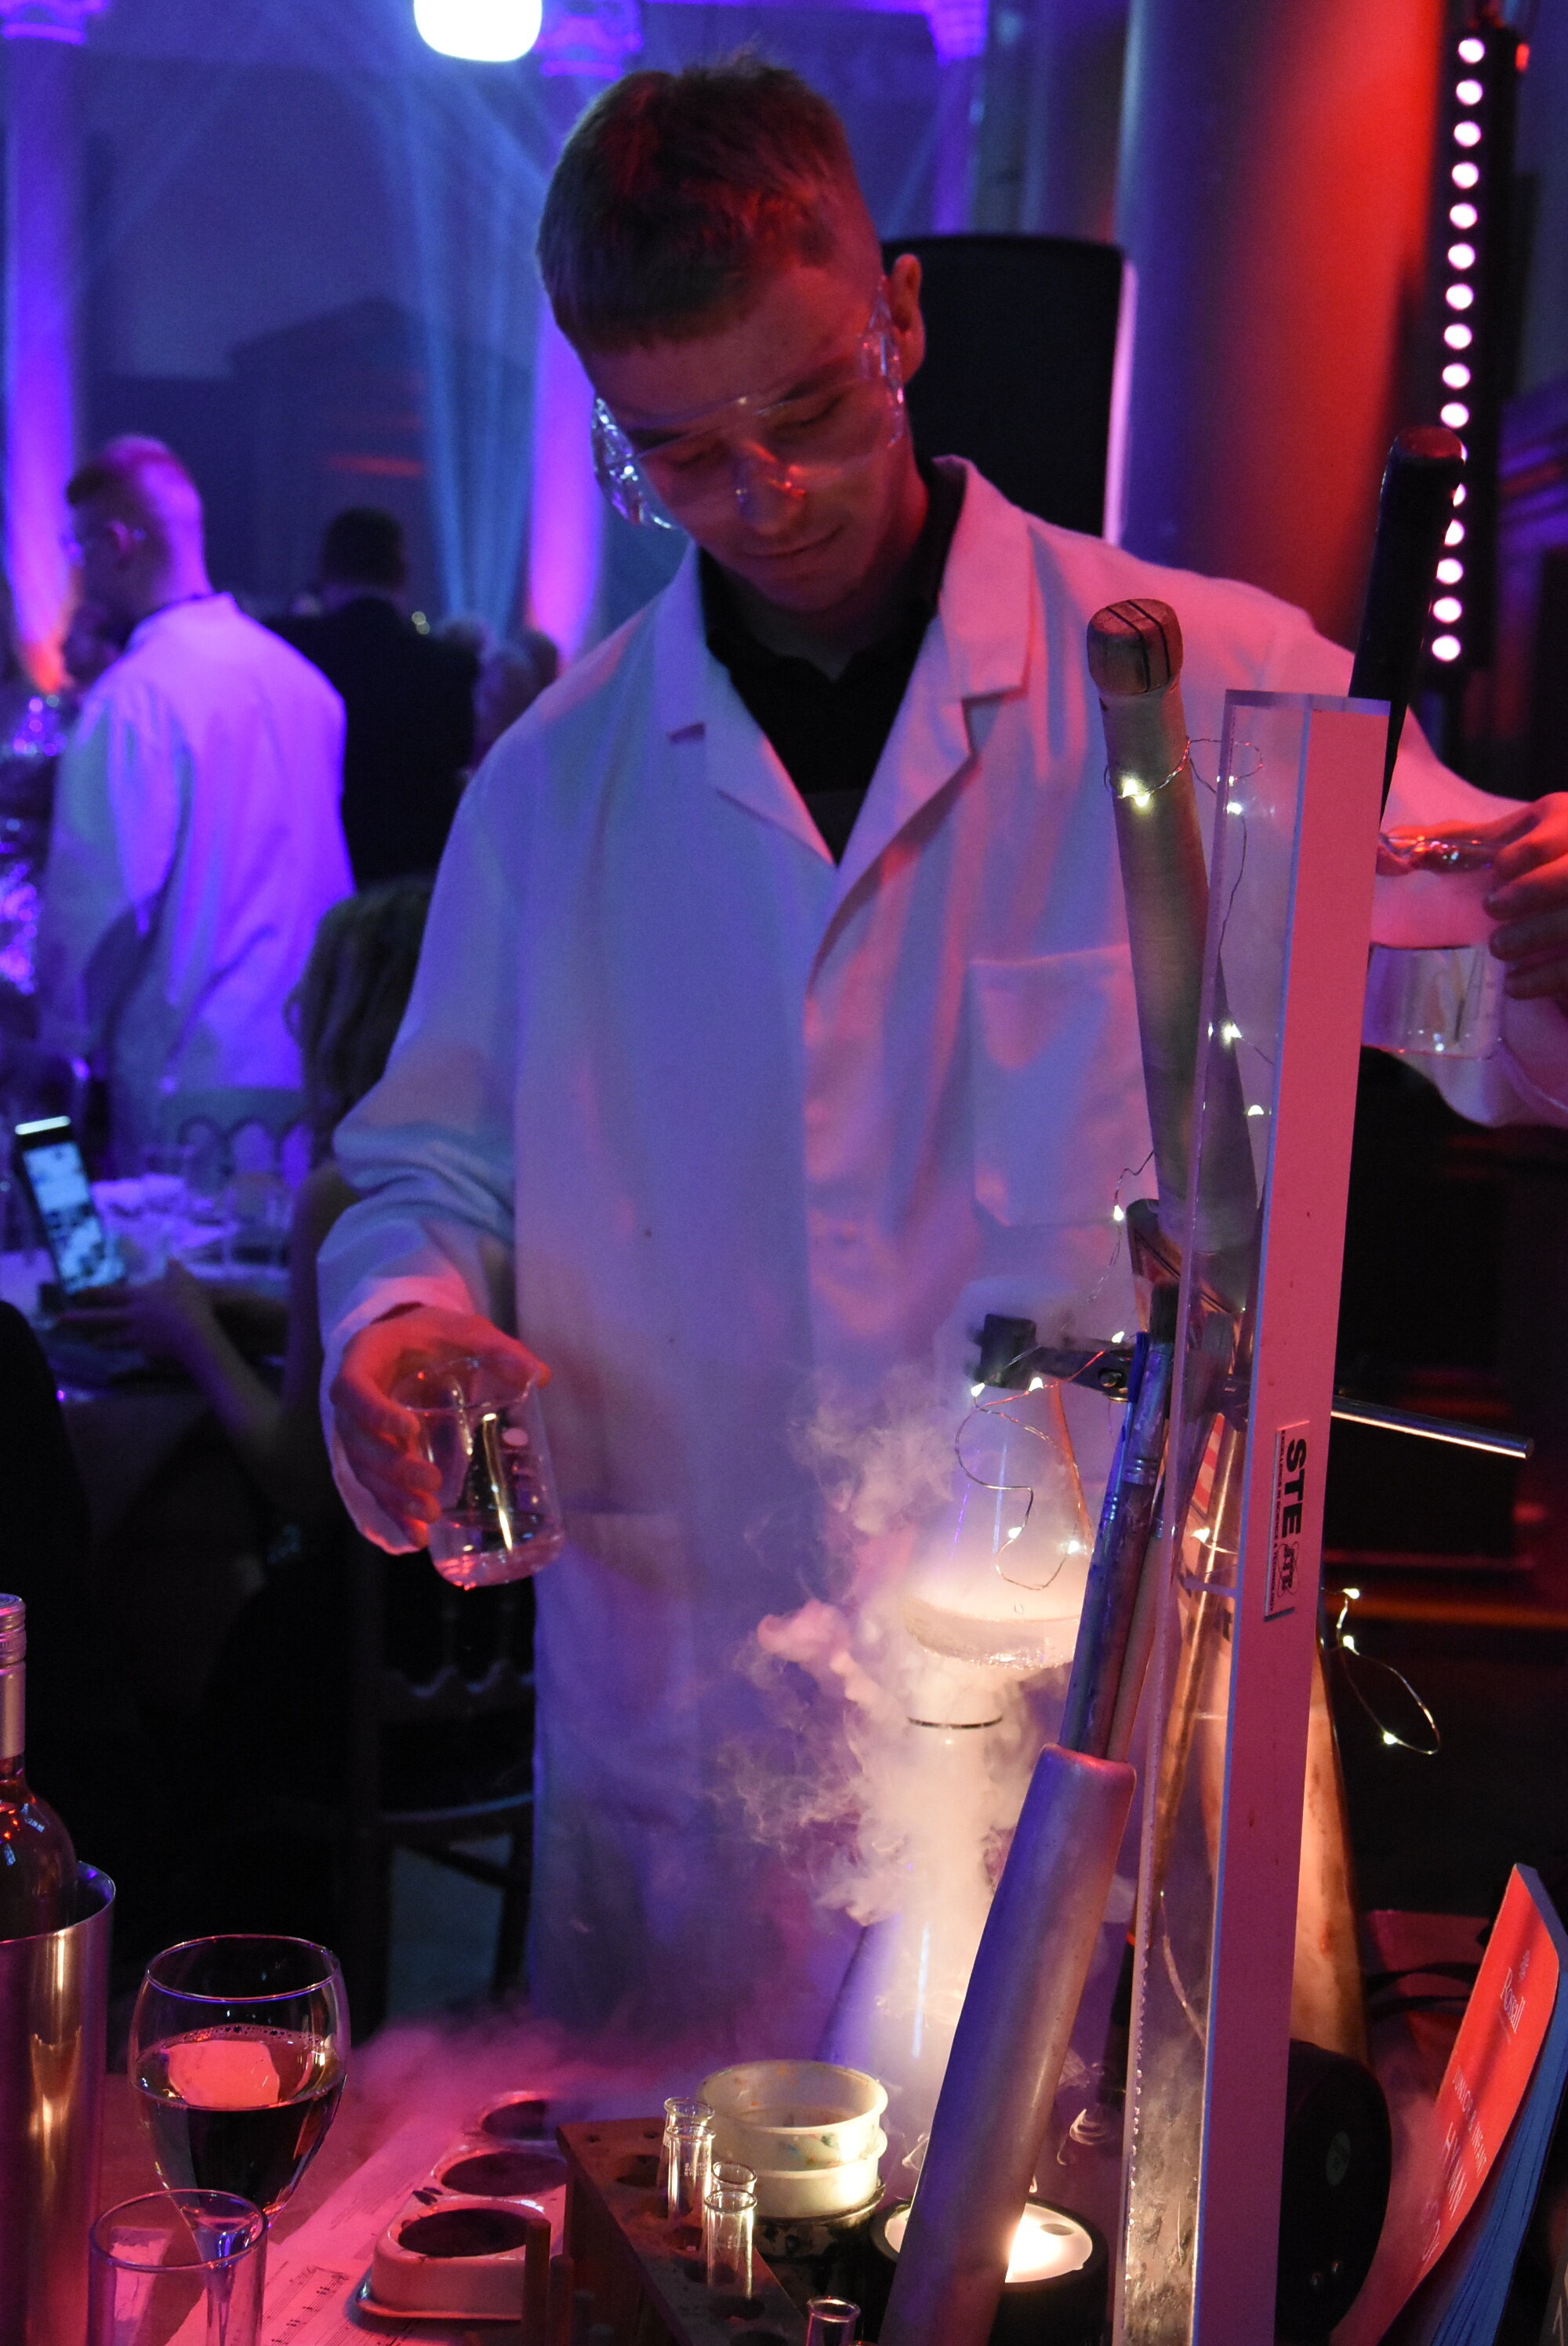 Dry ice scientific experiment was a spectacular way to begin the evening…keeping things in theme with the academic school surroundings!